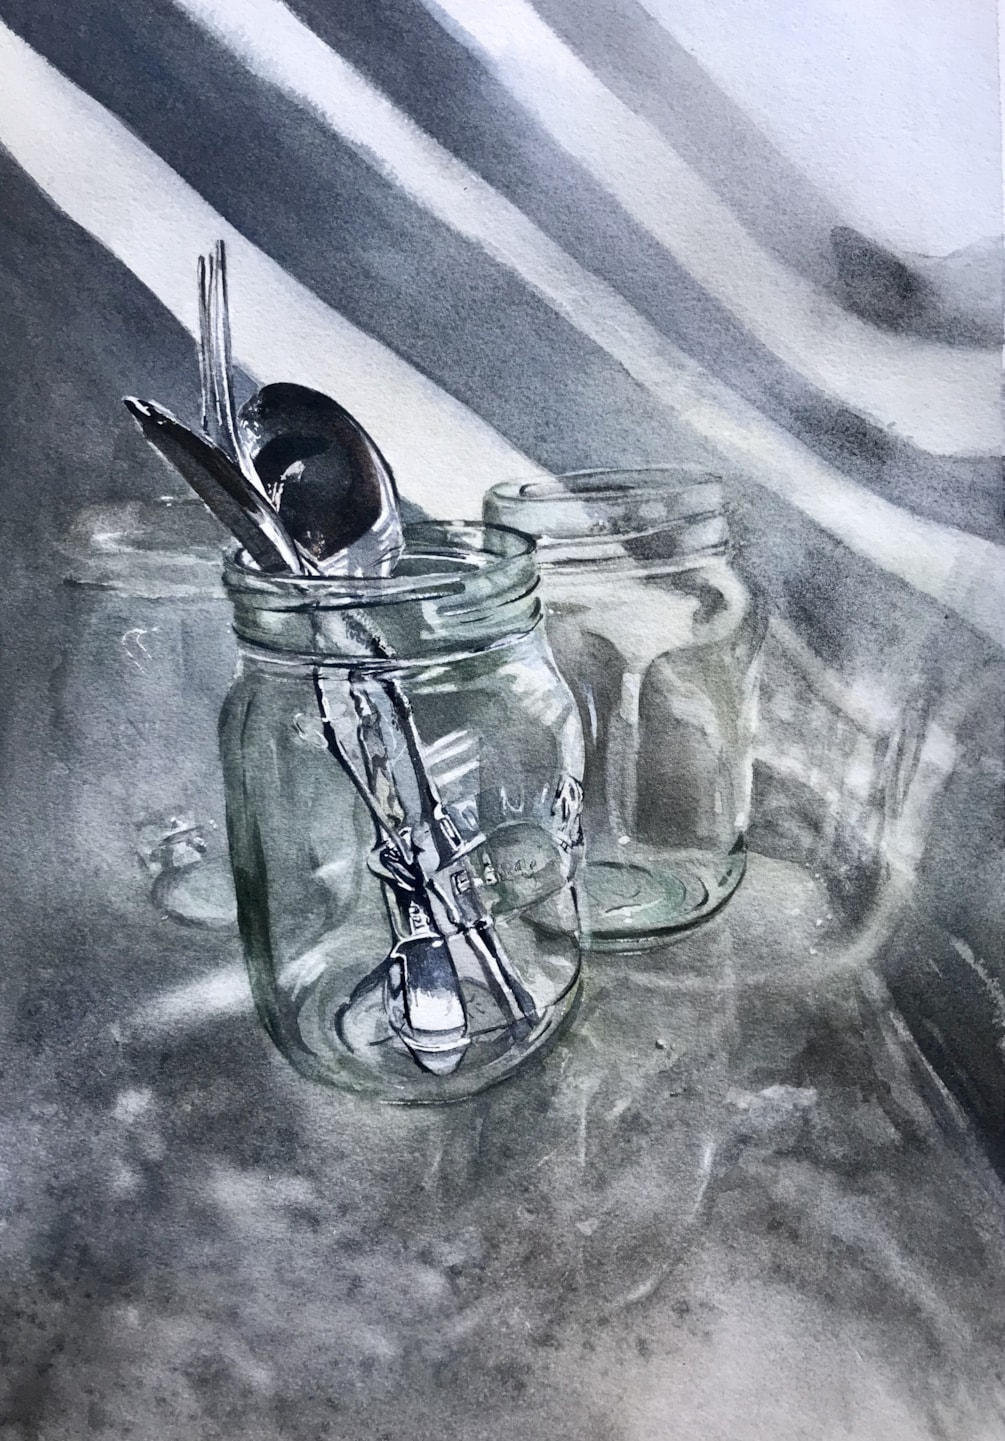 More glass and cutlery